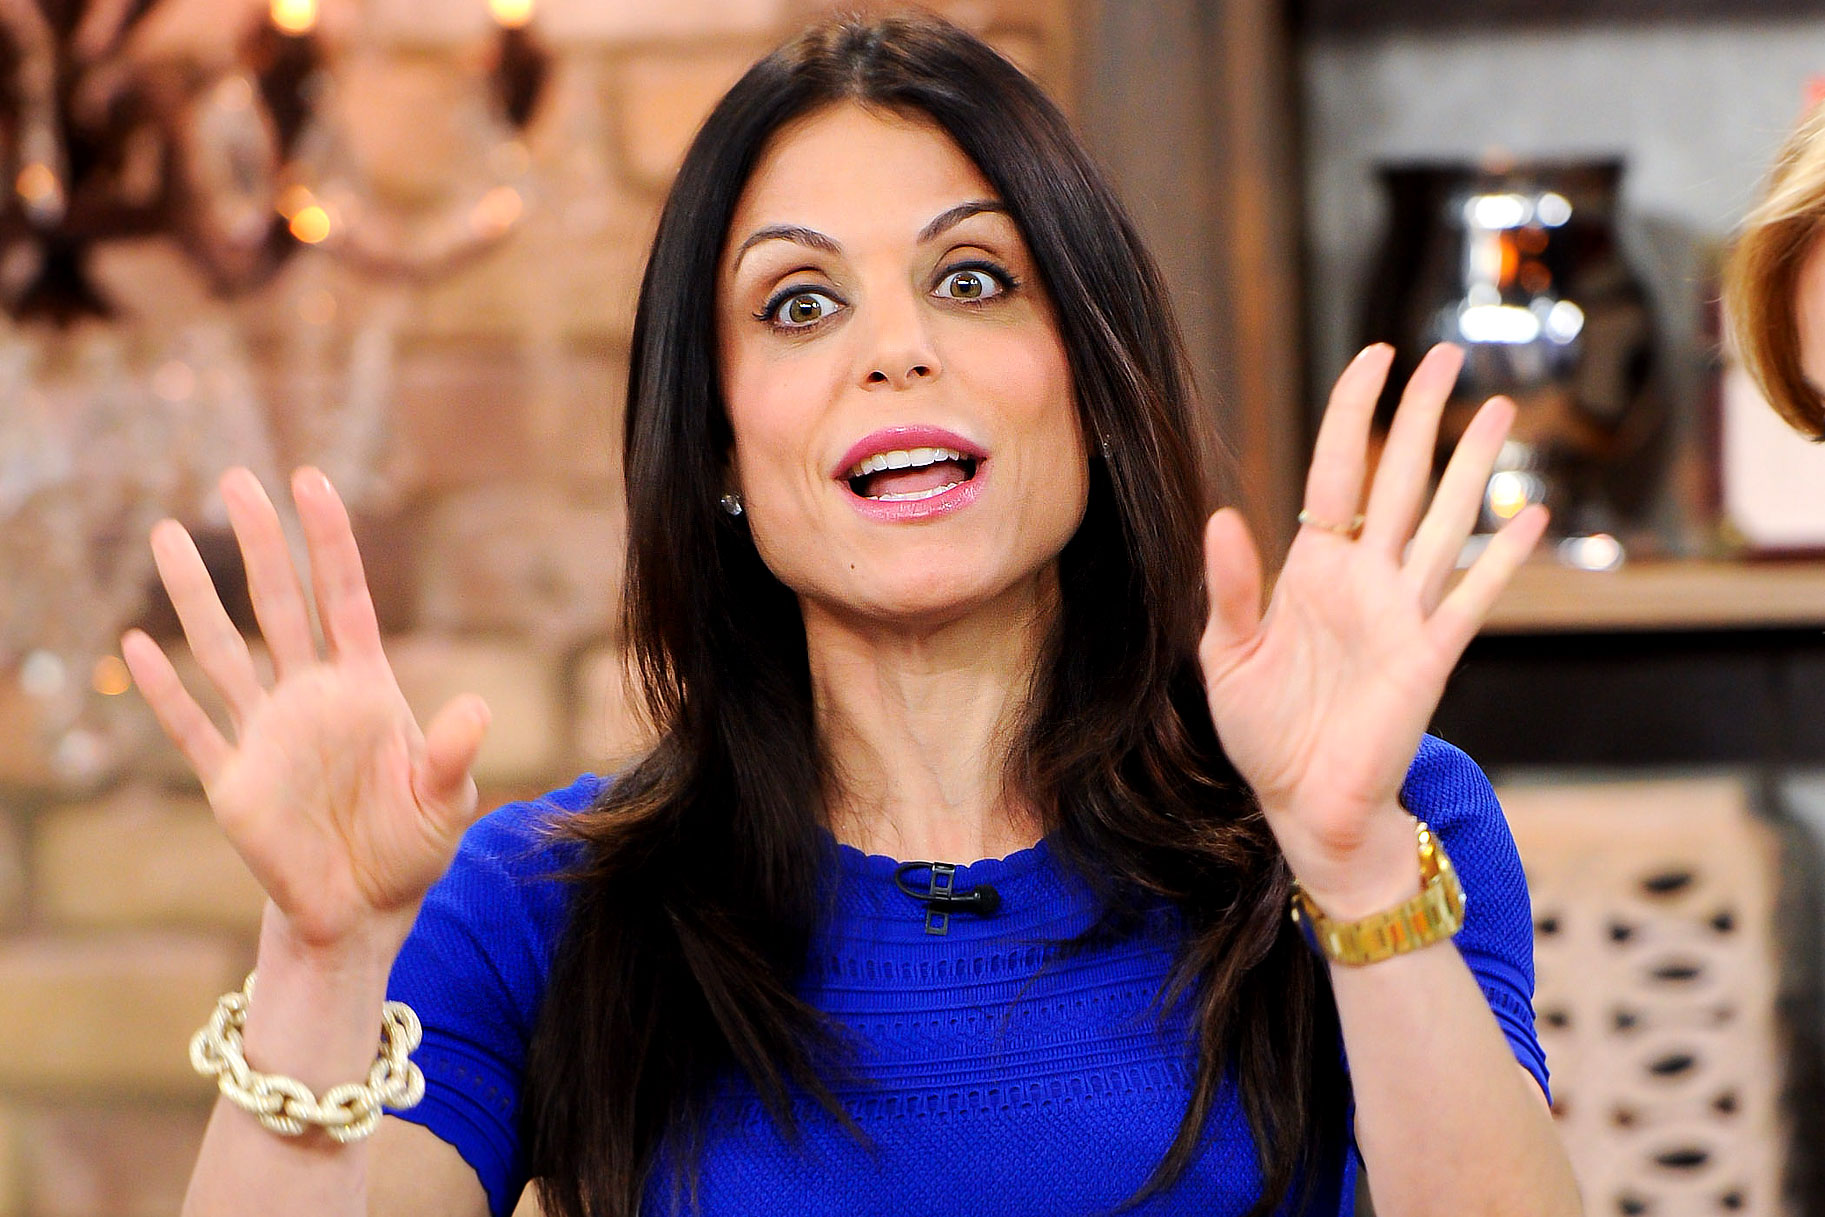 american reality tv personilty bethenny frankel wallpaper photos